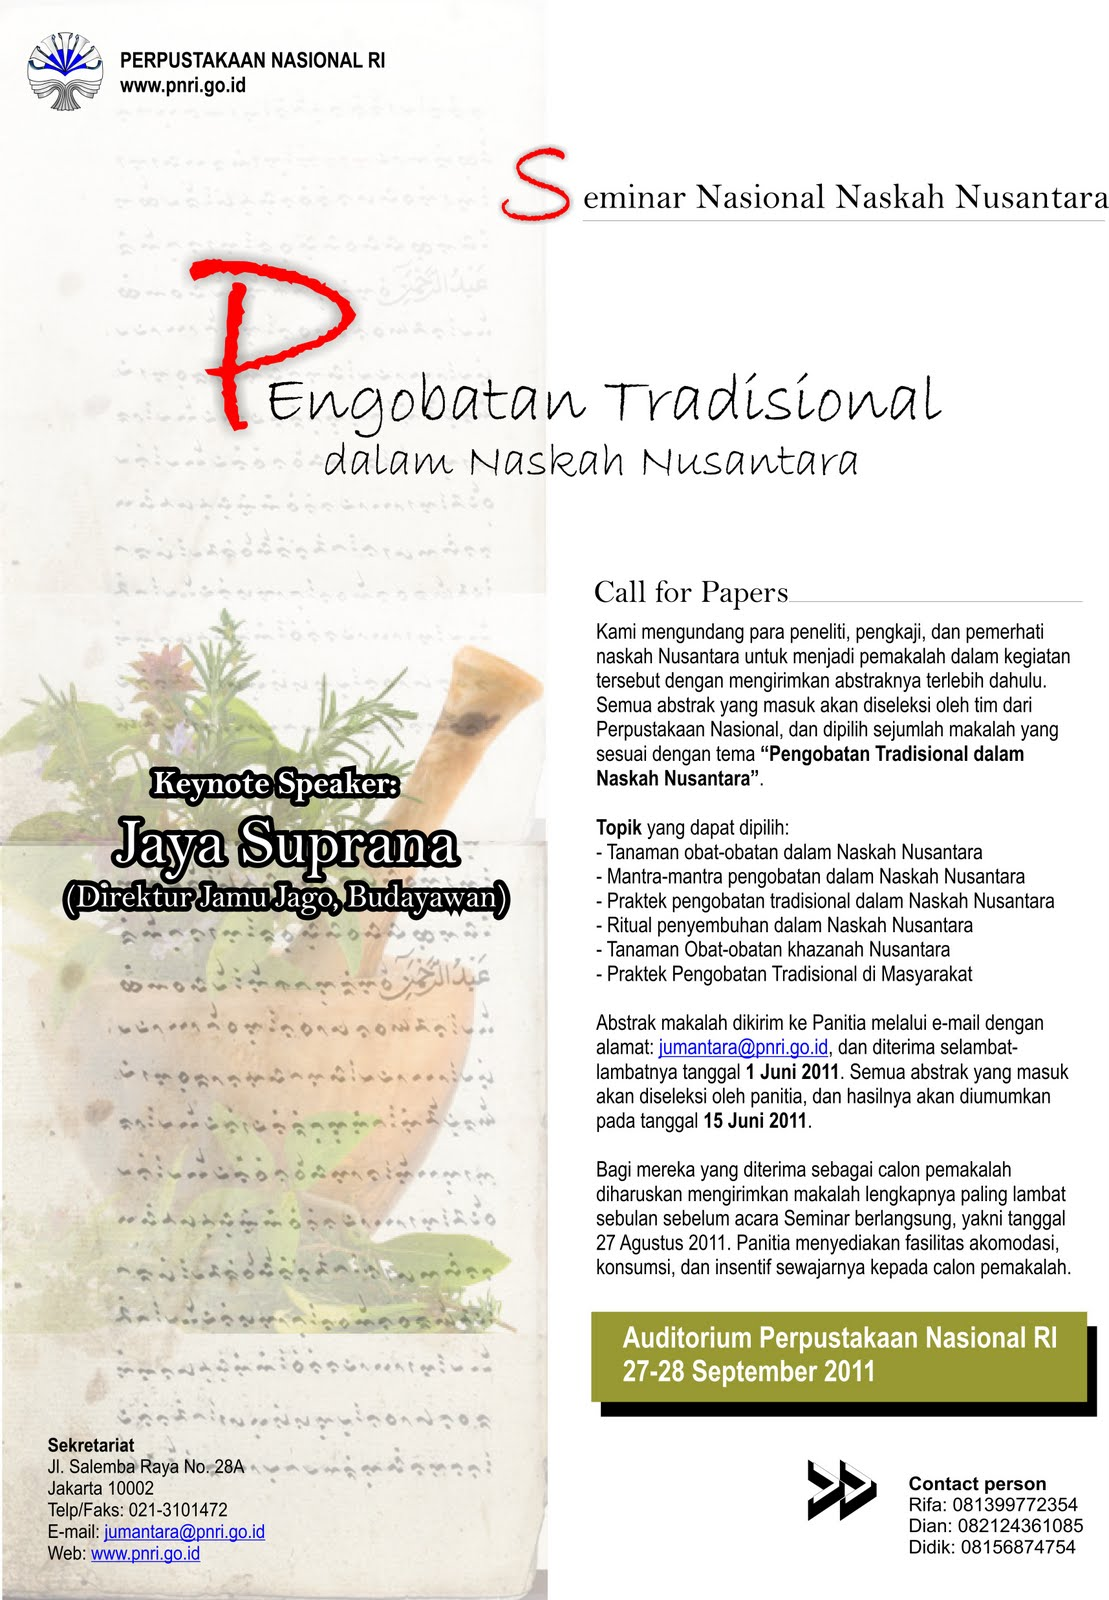 Pengobatan Tradisional Dalam Naskah Nusantara Call For Papers